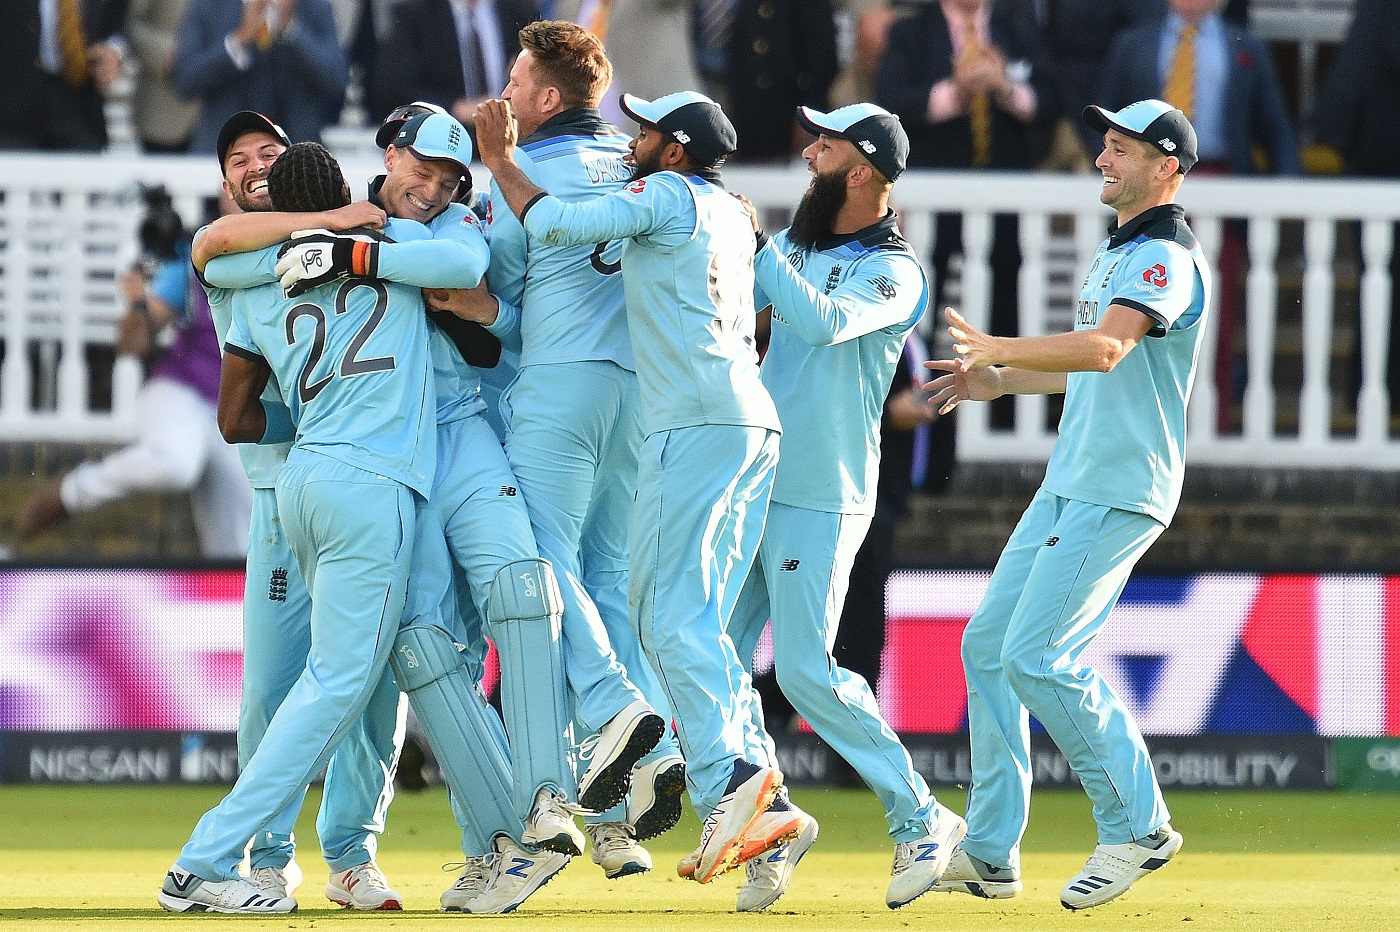 England seal stunning victory over New Zealand in epic 2019 World Cup final